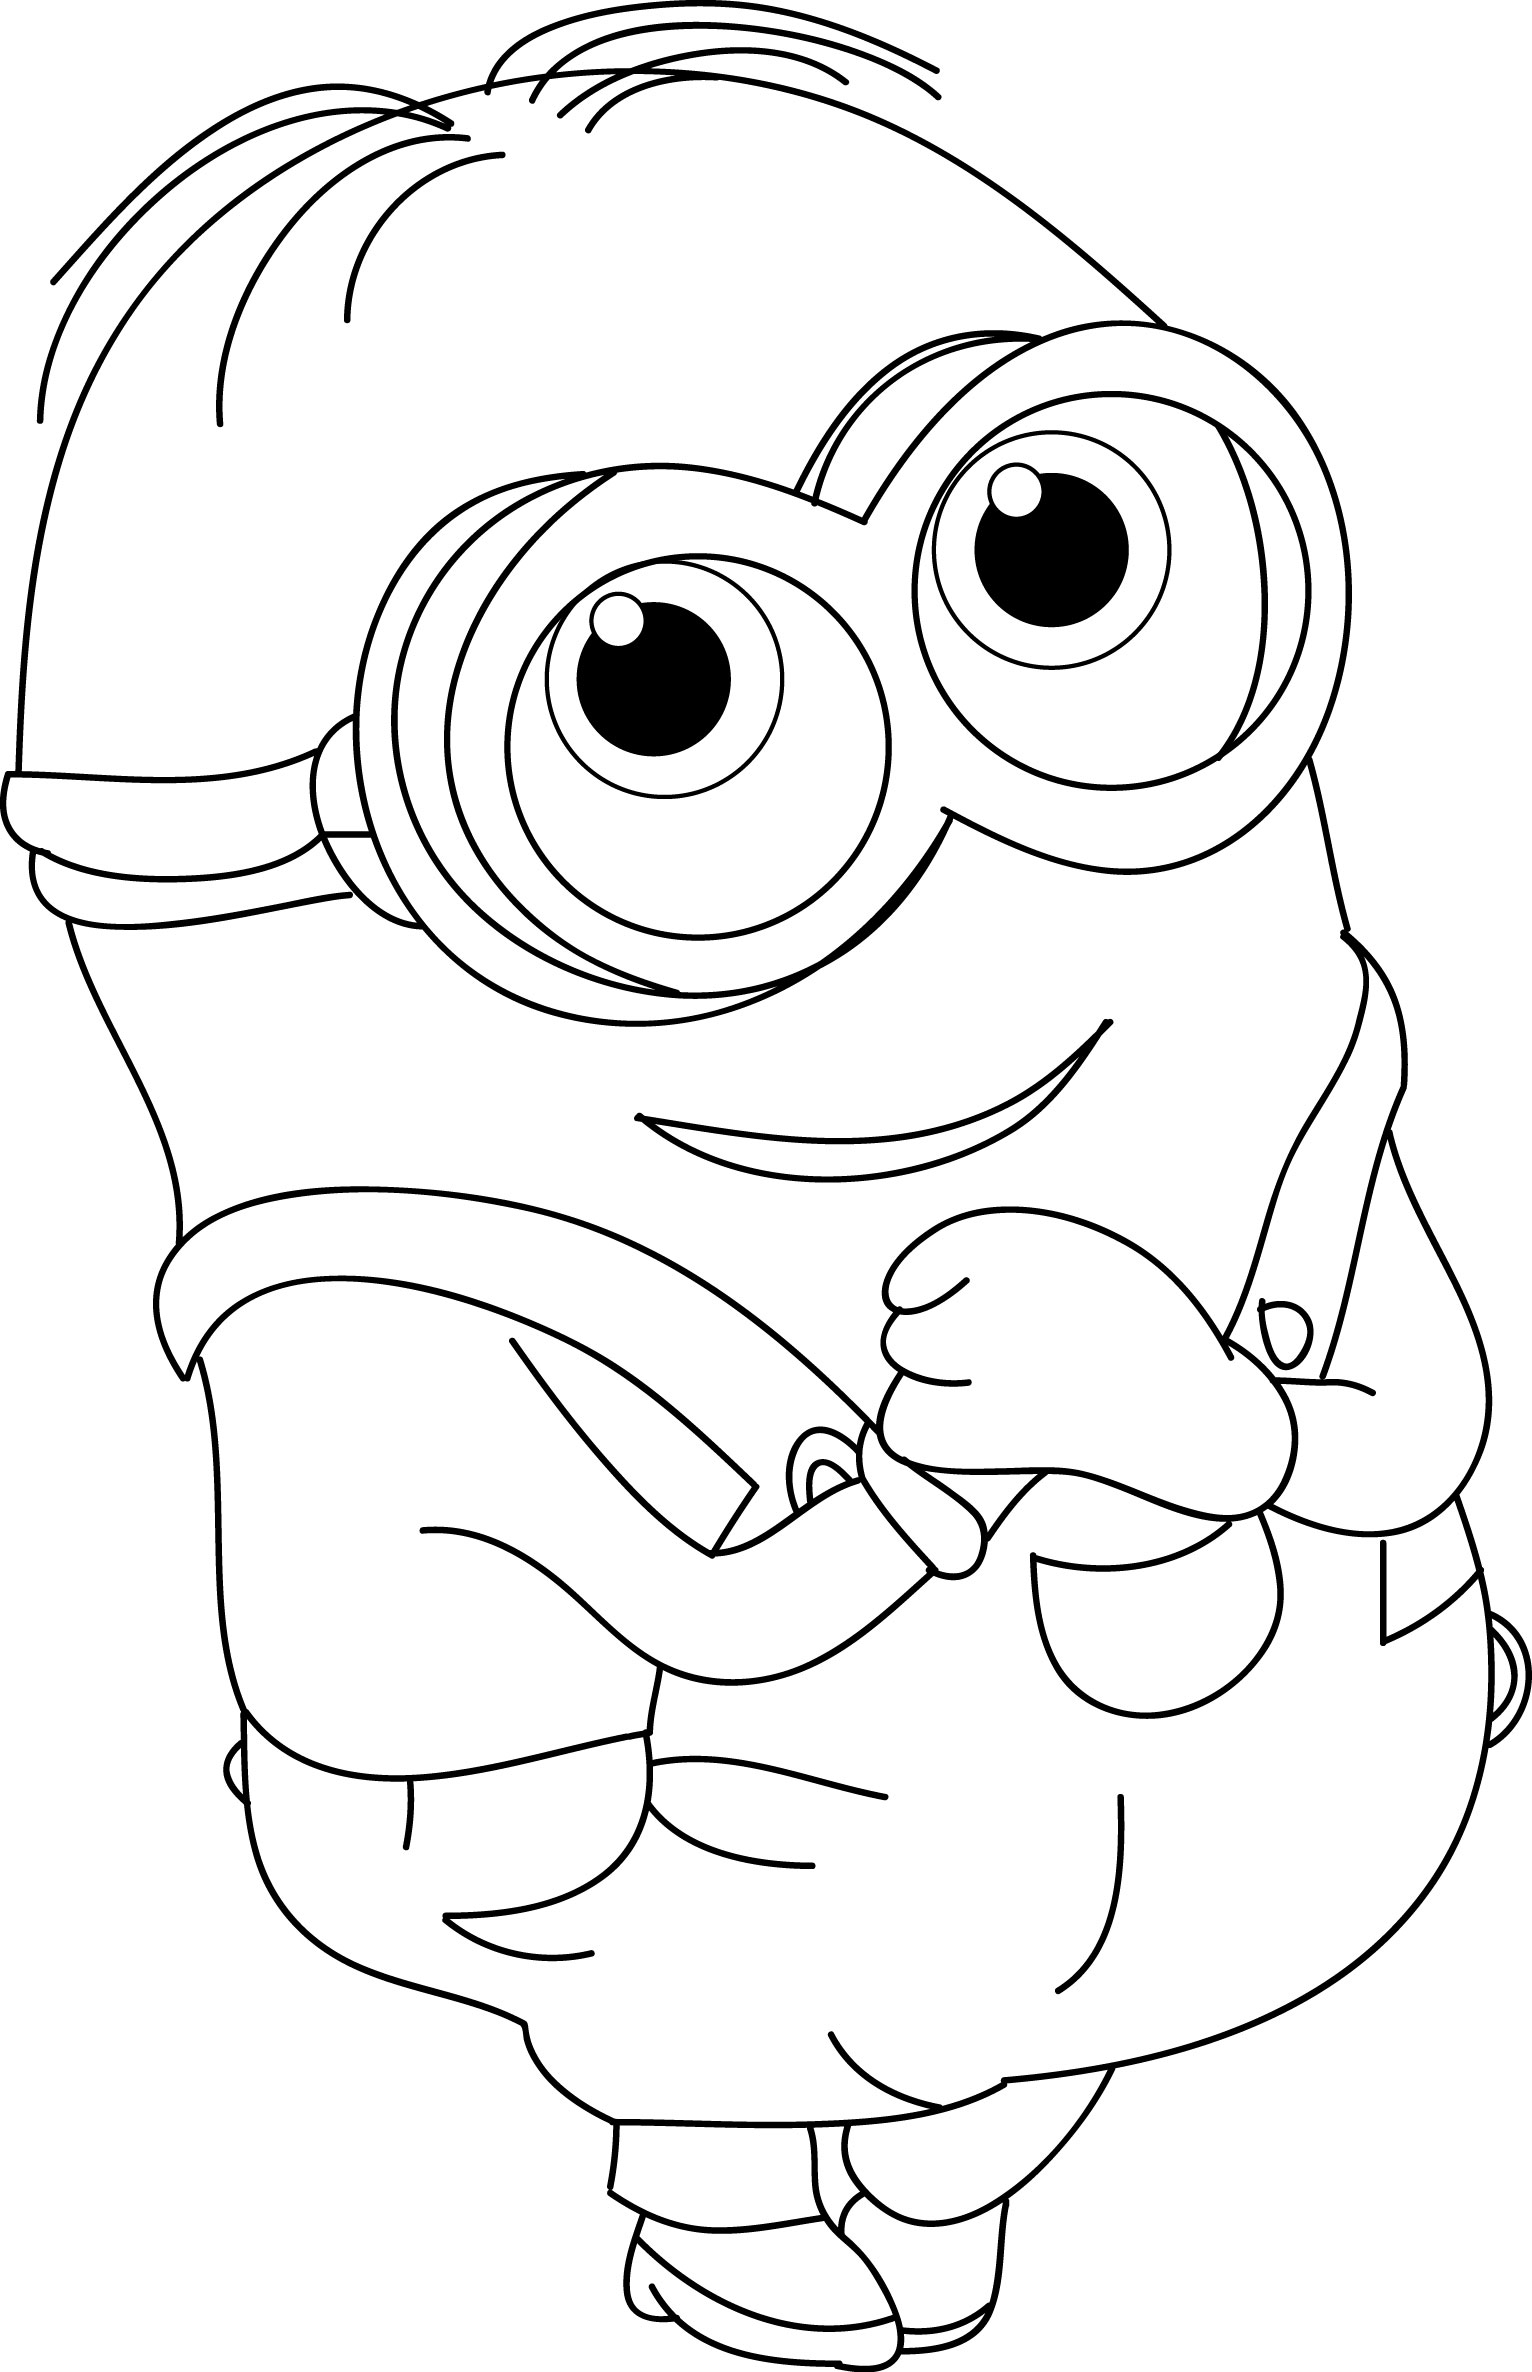 1532x2372 Cool Minion Coloring Pageson About Minion Color Pages On With Hd